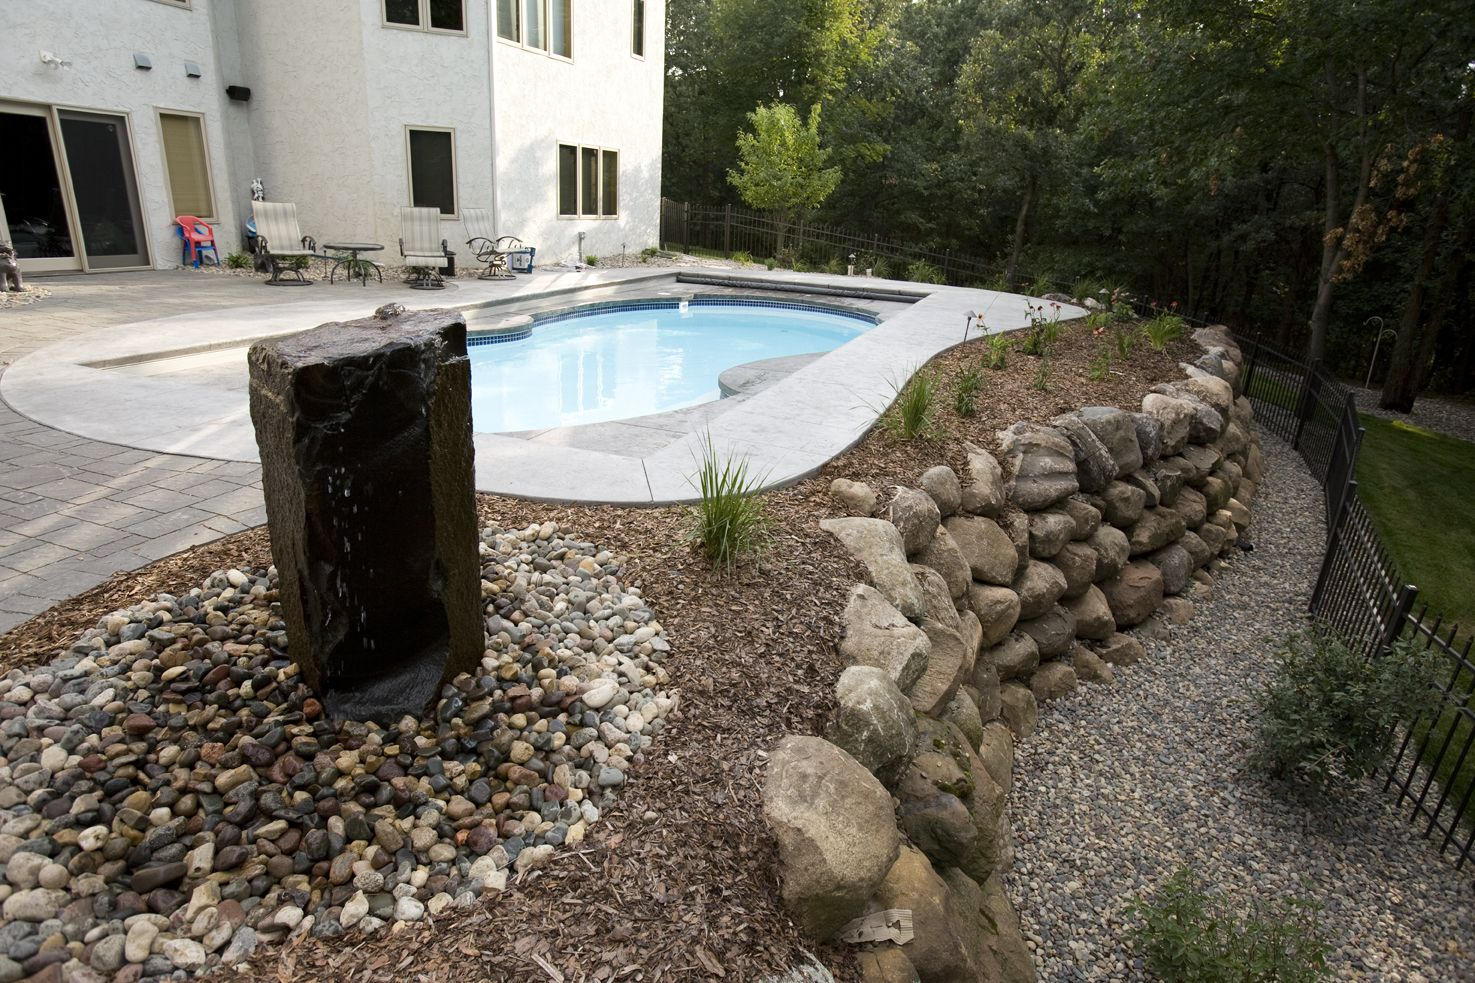 Pools on sloping lots google search ideas for the - Building a swimming pool on a slope ...